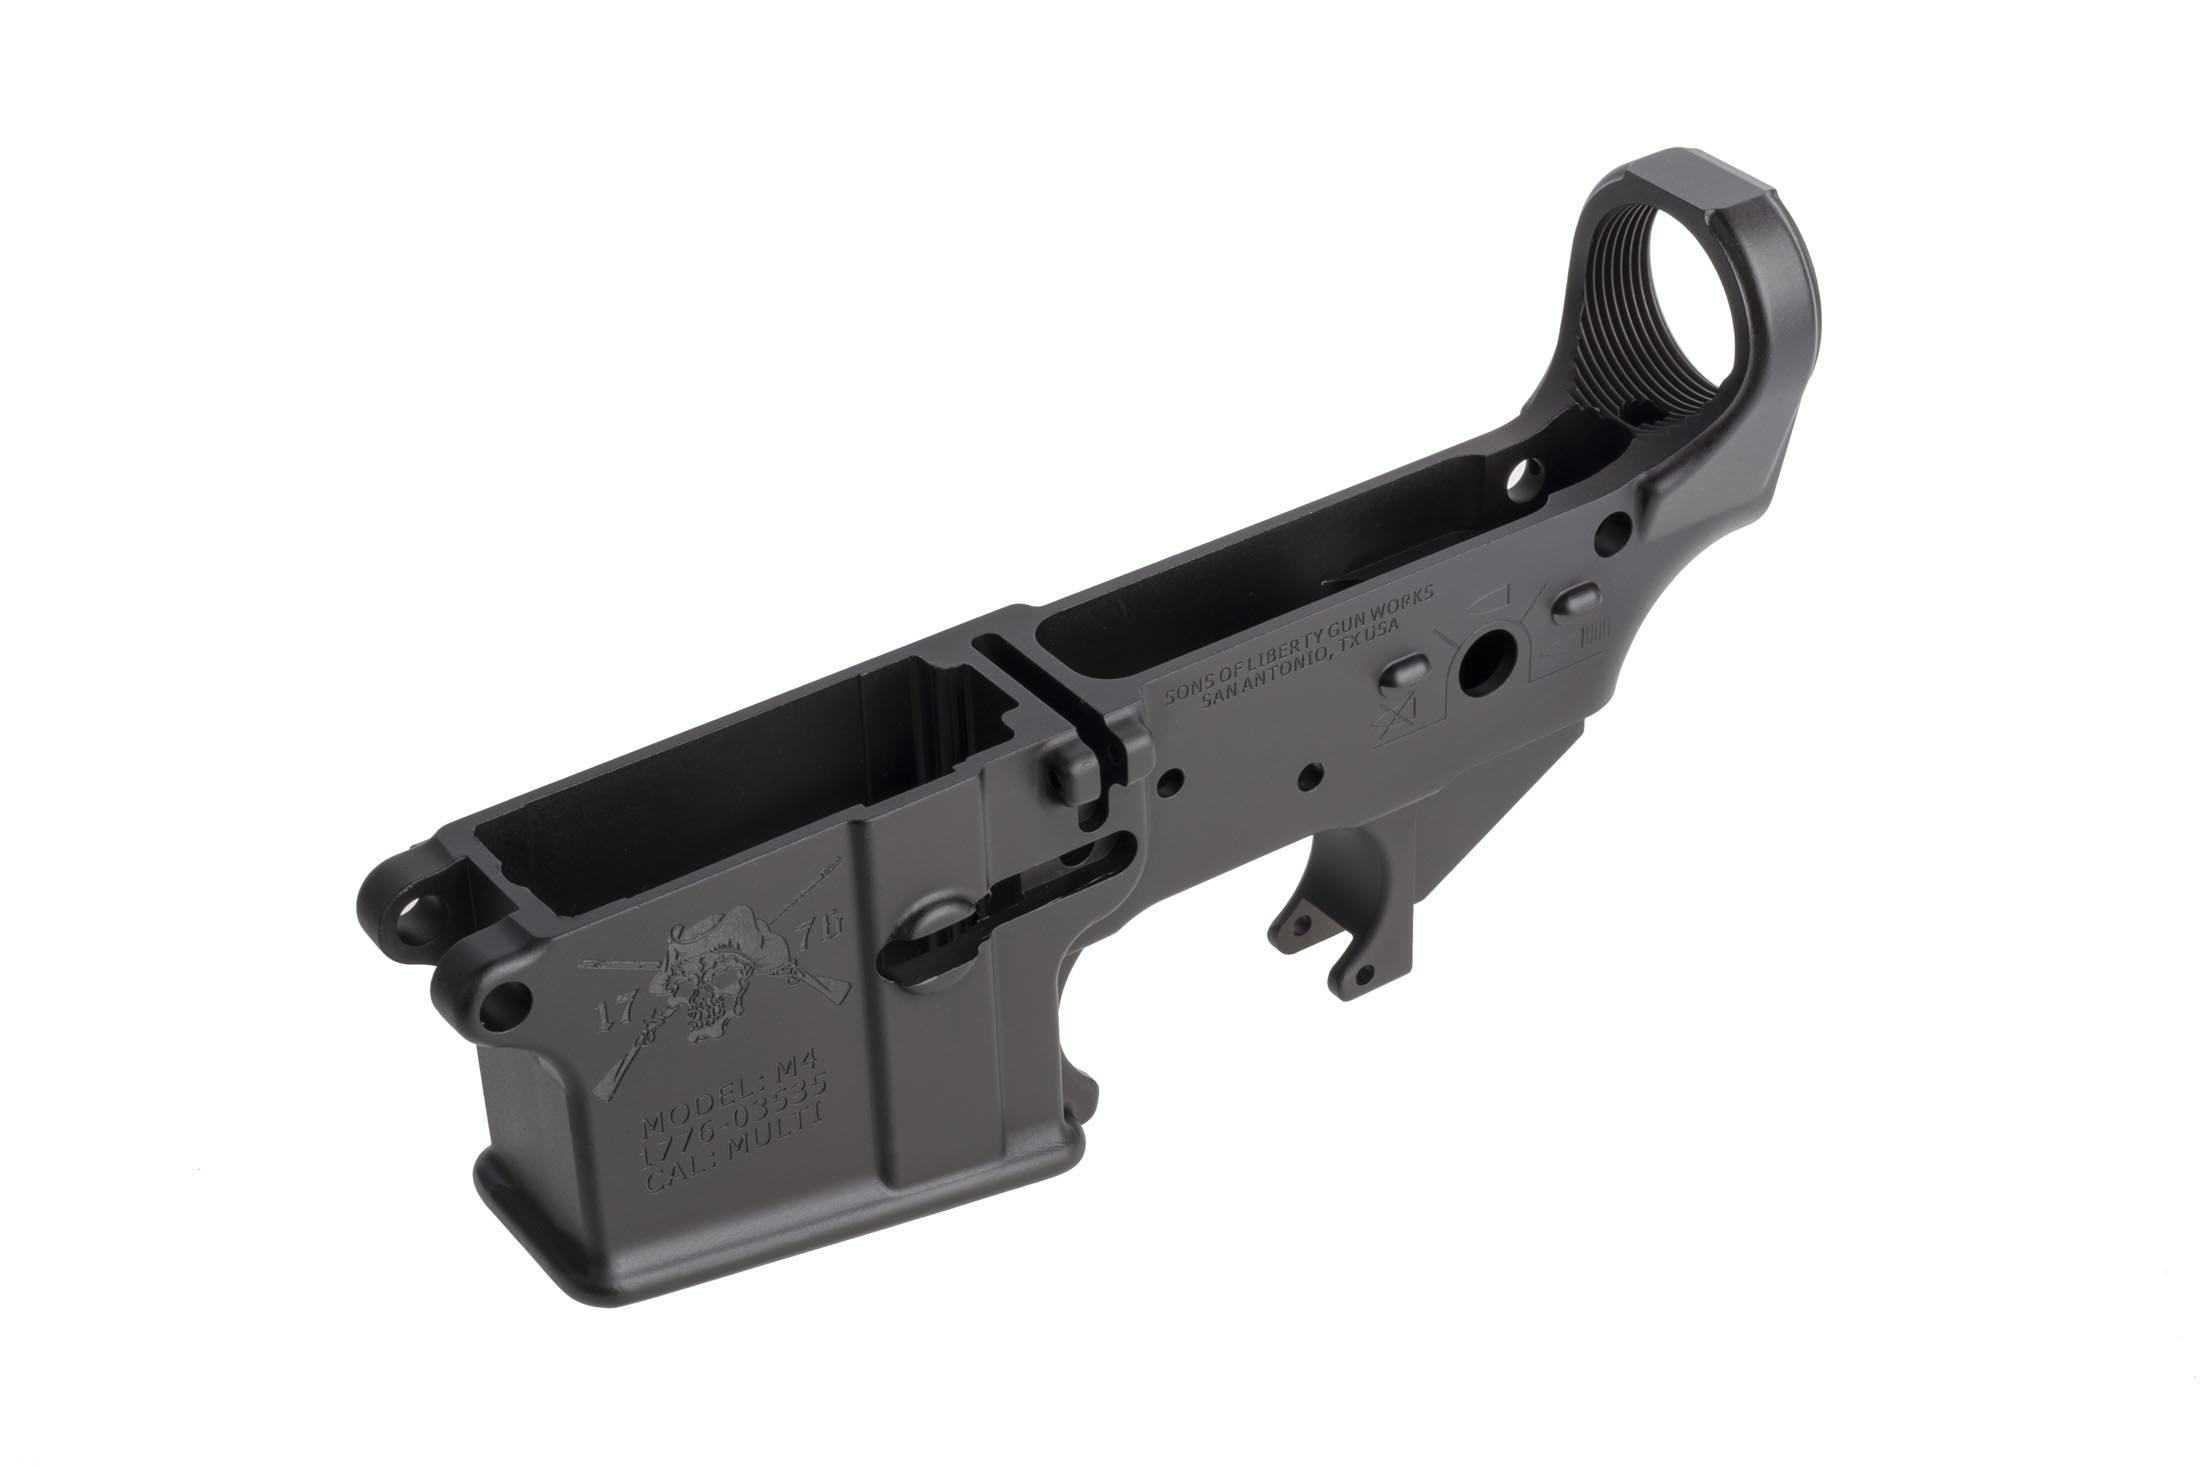 SoLGW stripped aR-15 lower receiver features the Angry Patriot logo on the left hand side of the magazine well